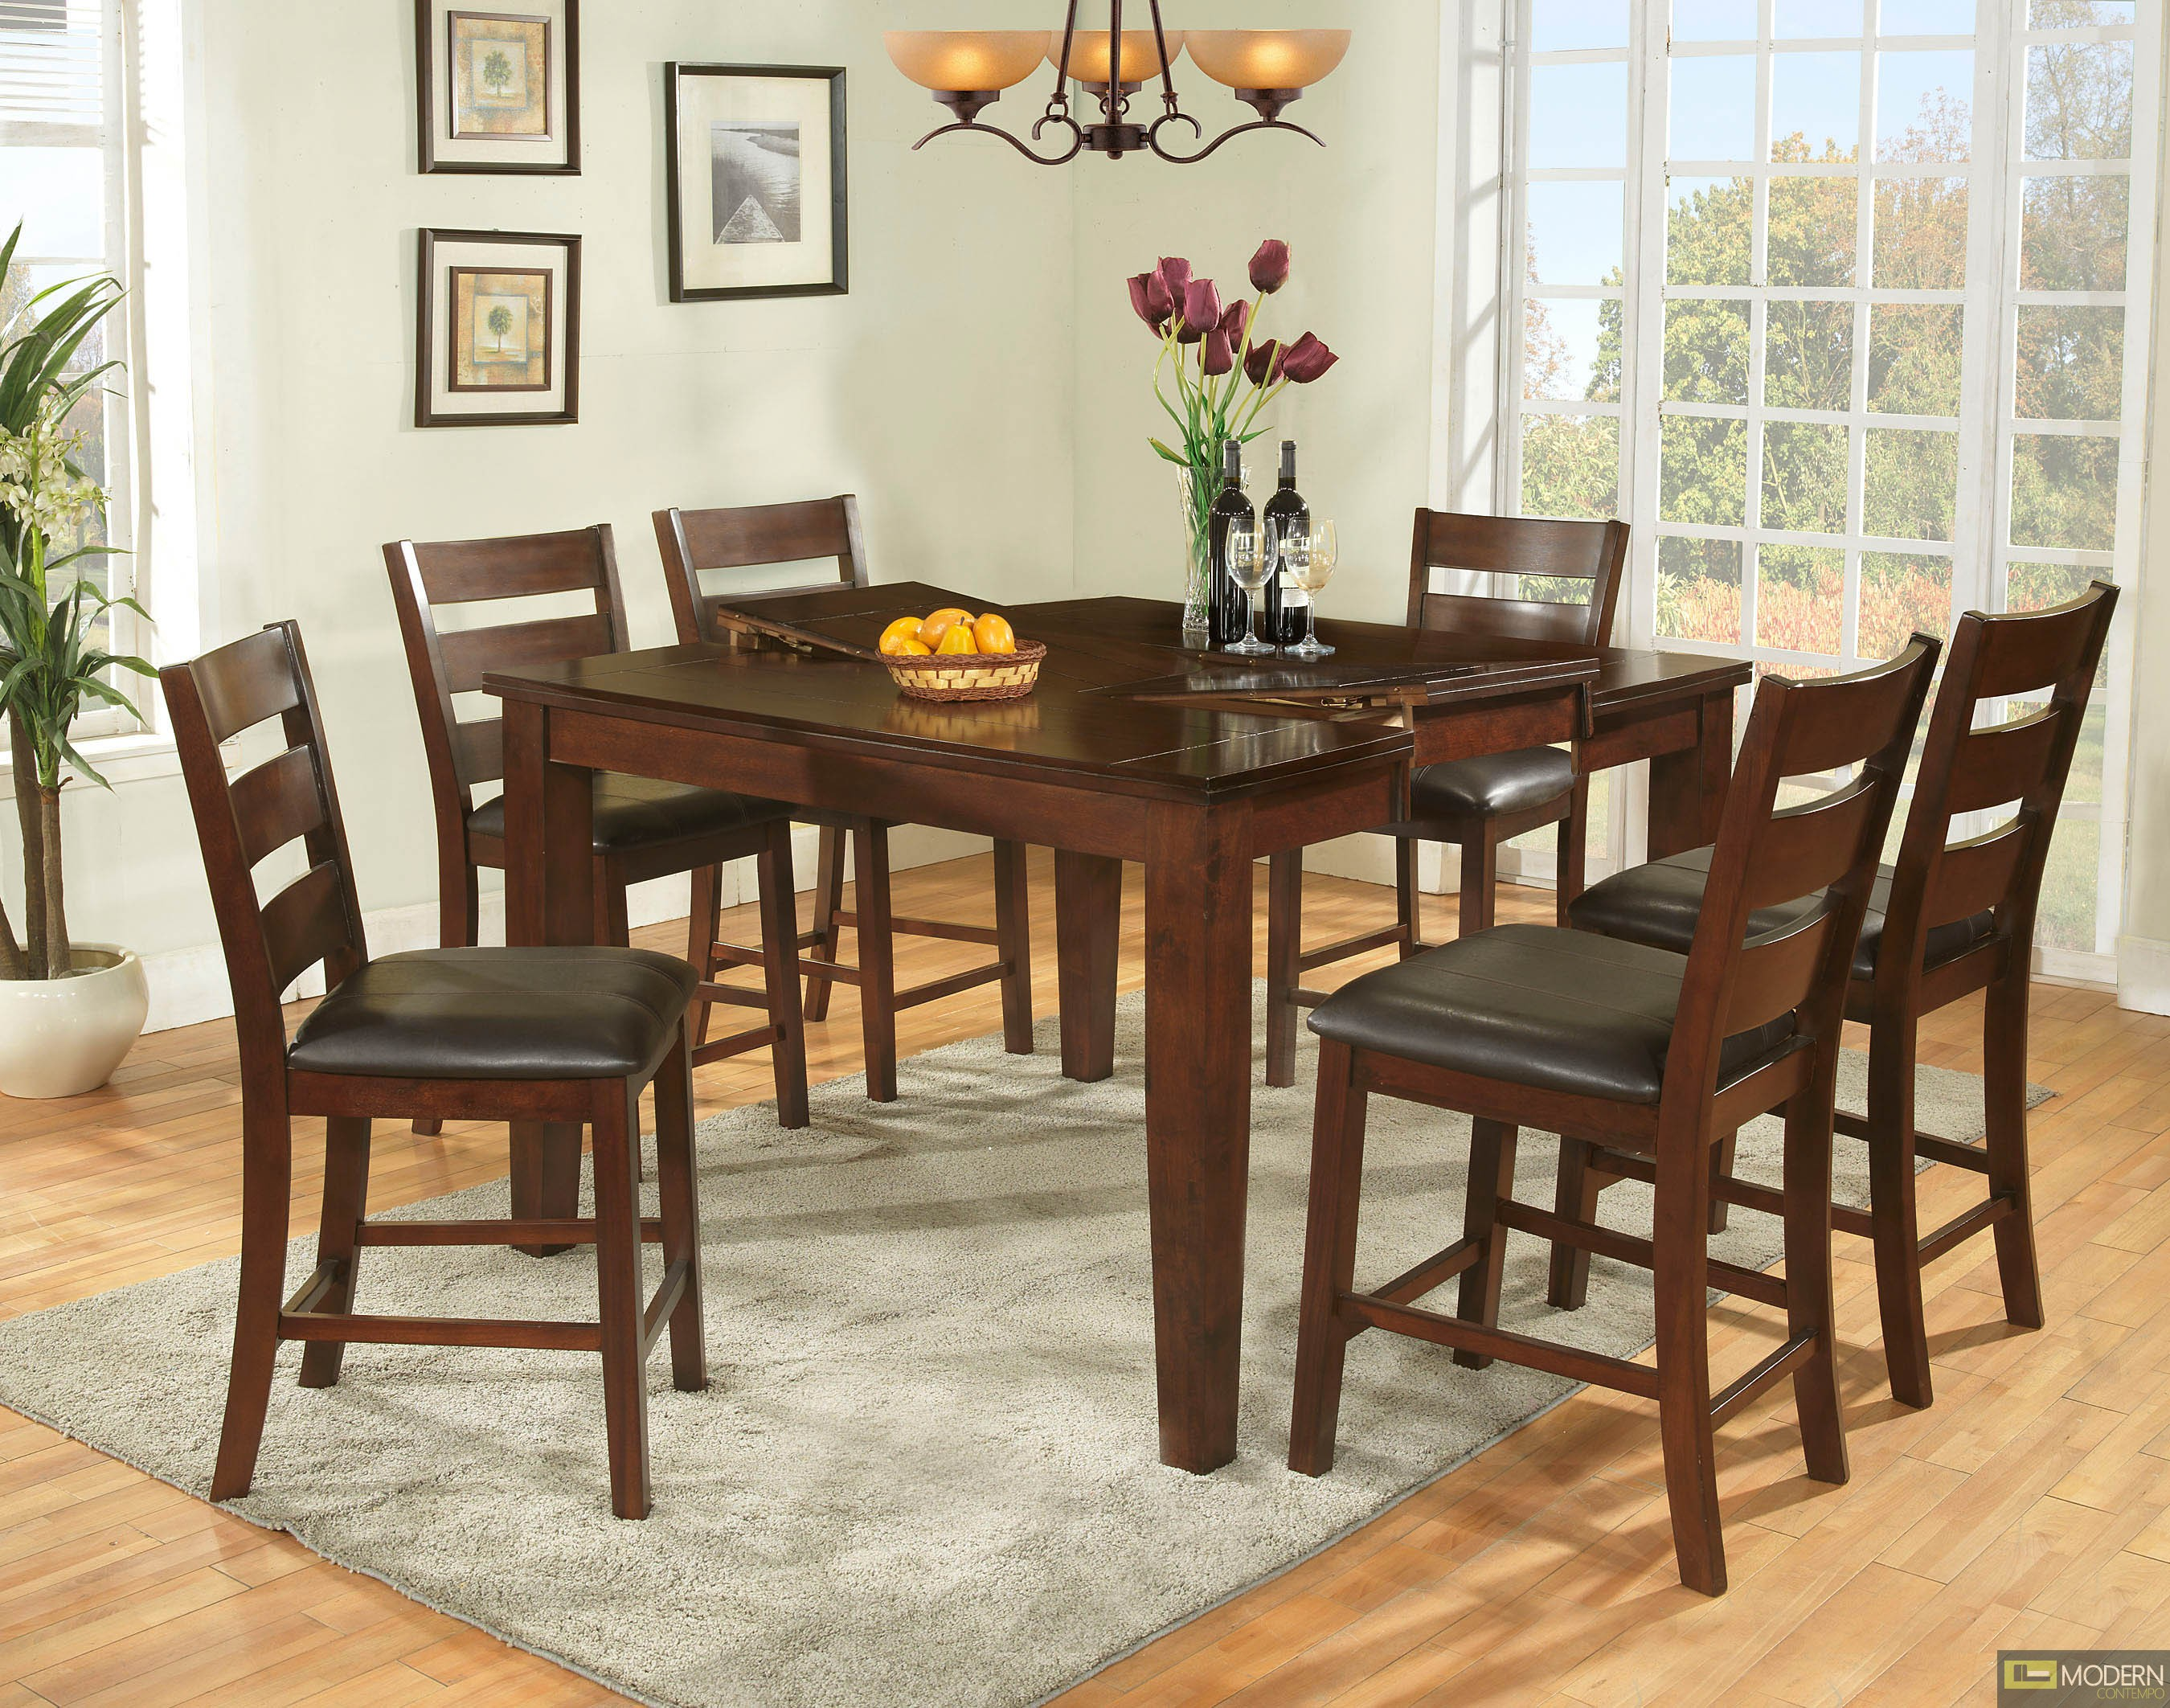 7 pc modern dark walnut counter height dining room table chairs set tbqd